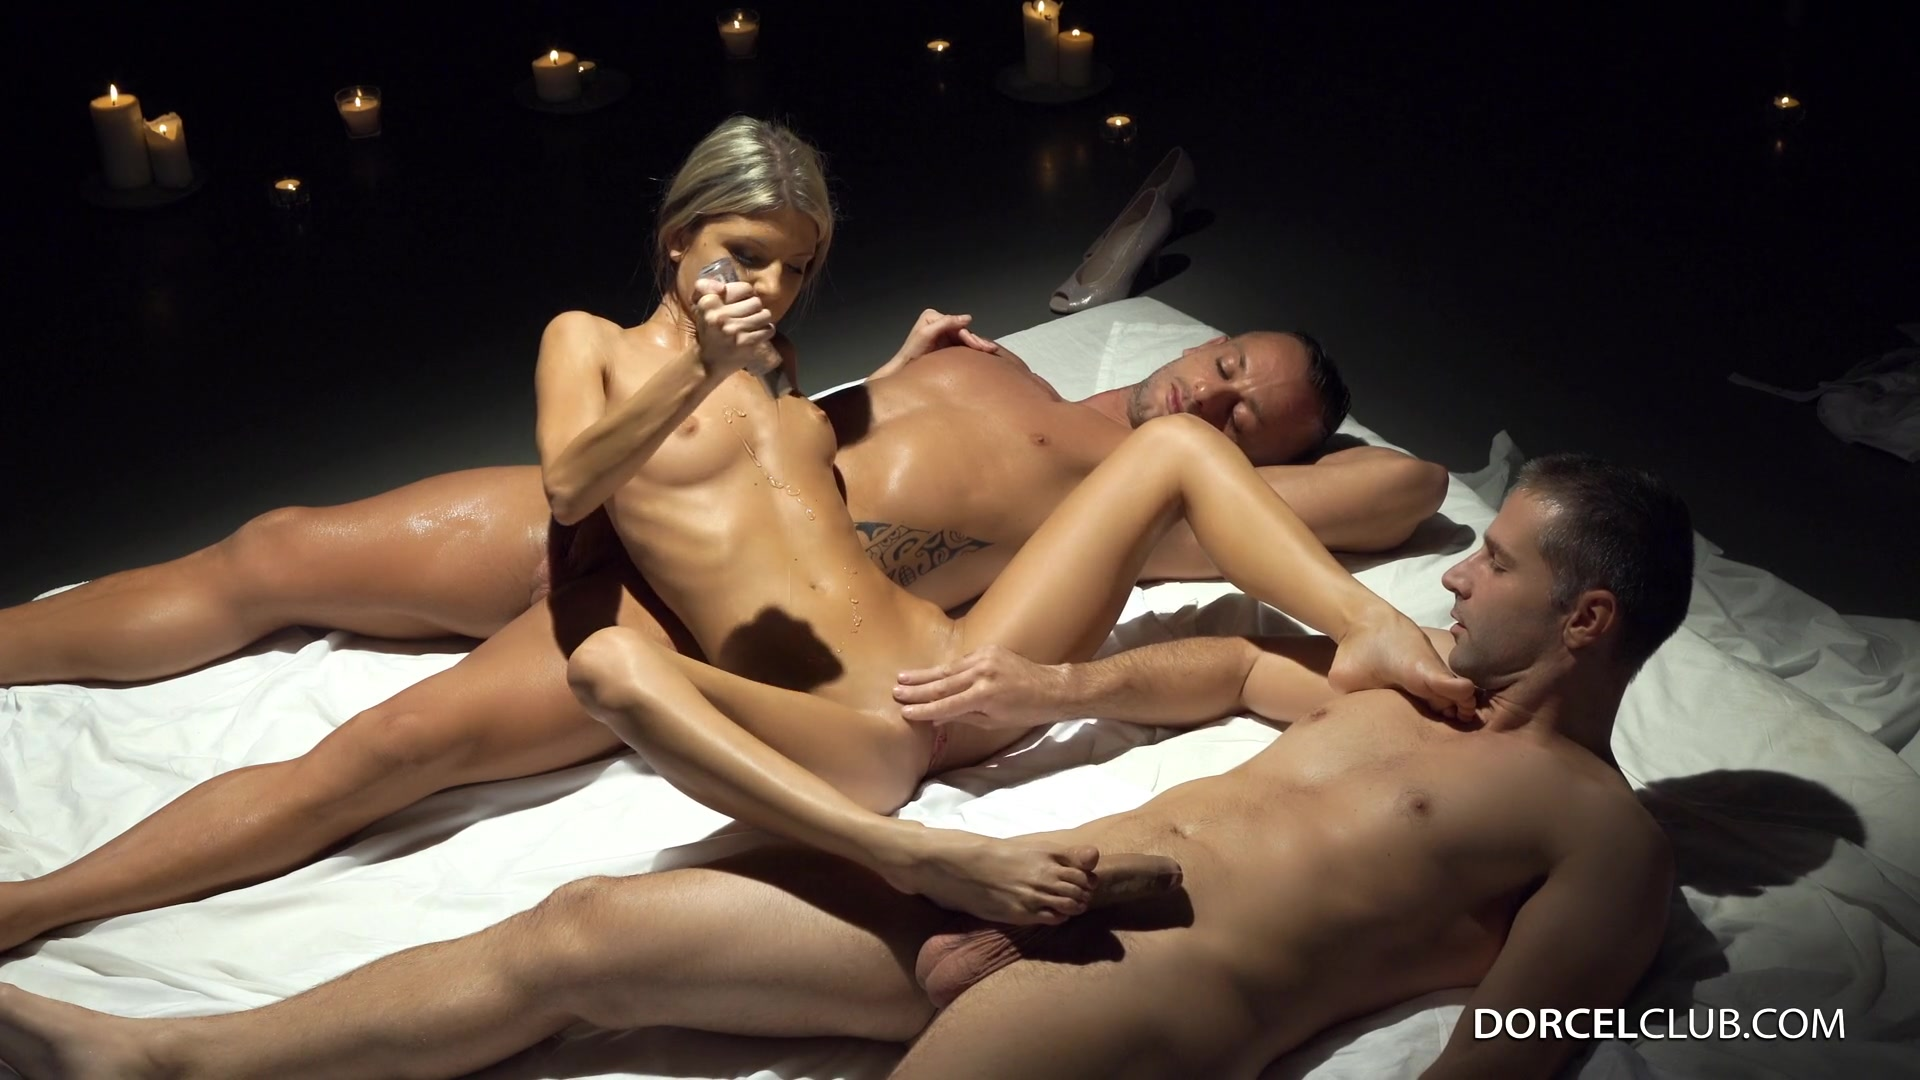 Gina Gerson - Gina, the naughty masseur